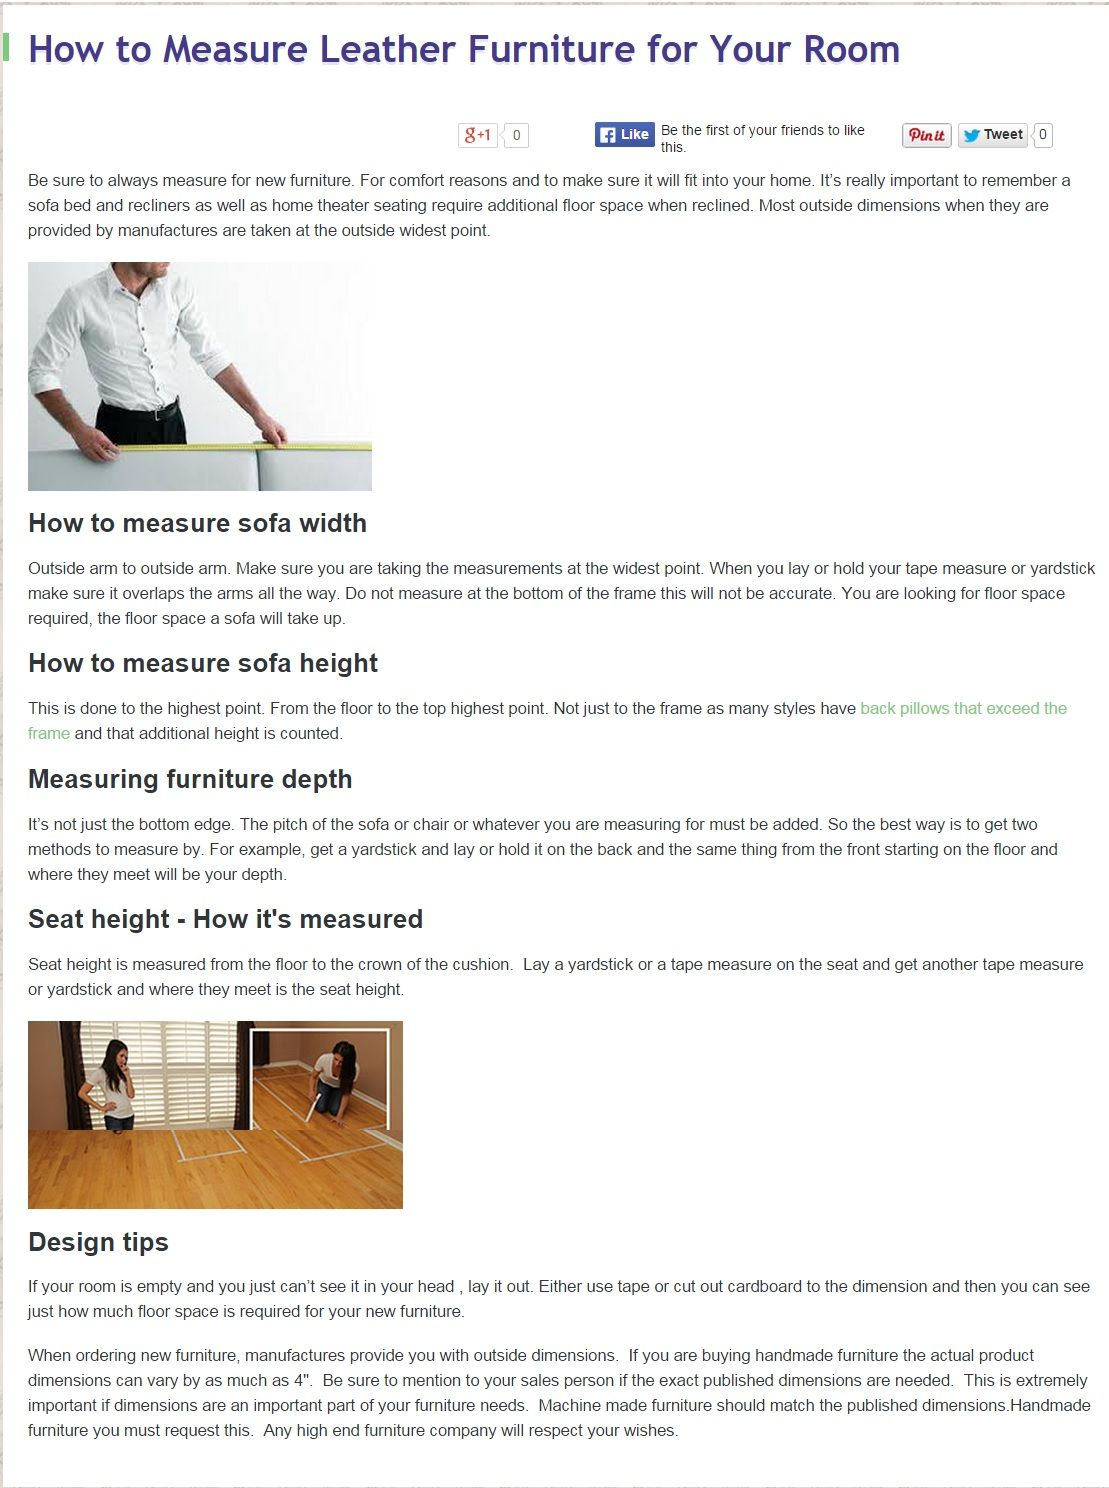 How to measure leather furniture for your room leather sofas and living room furniture pinterest leather theater seats and leather sectional sofas